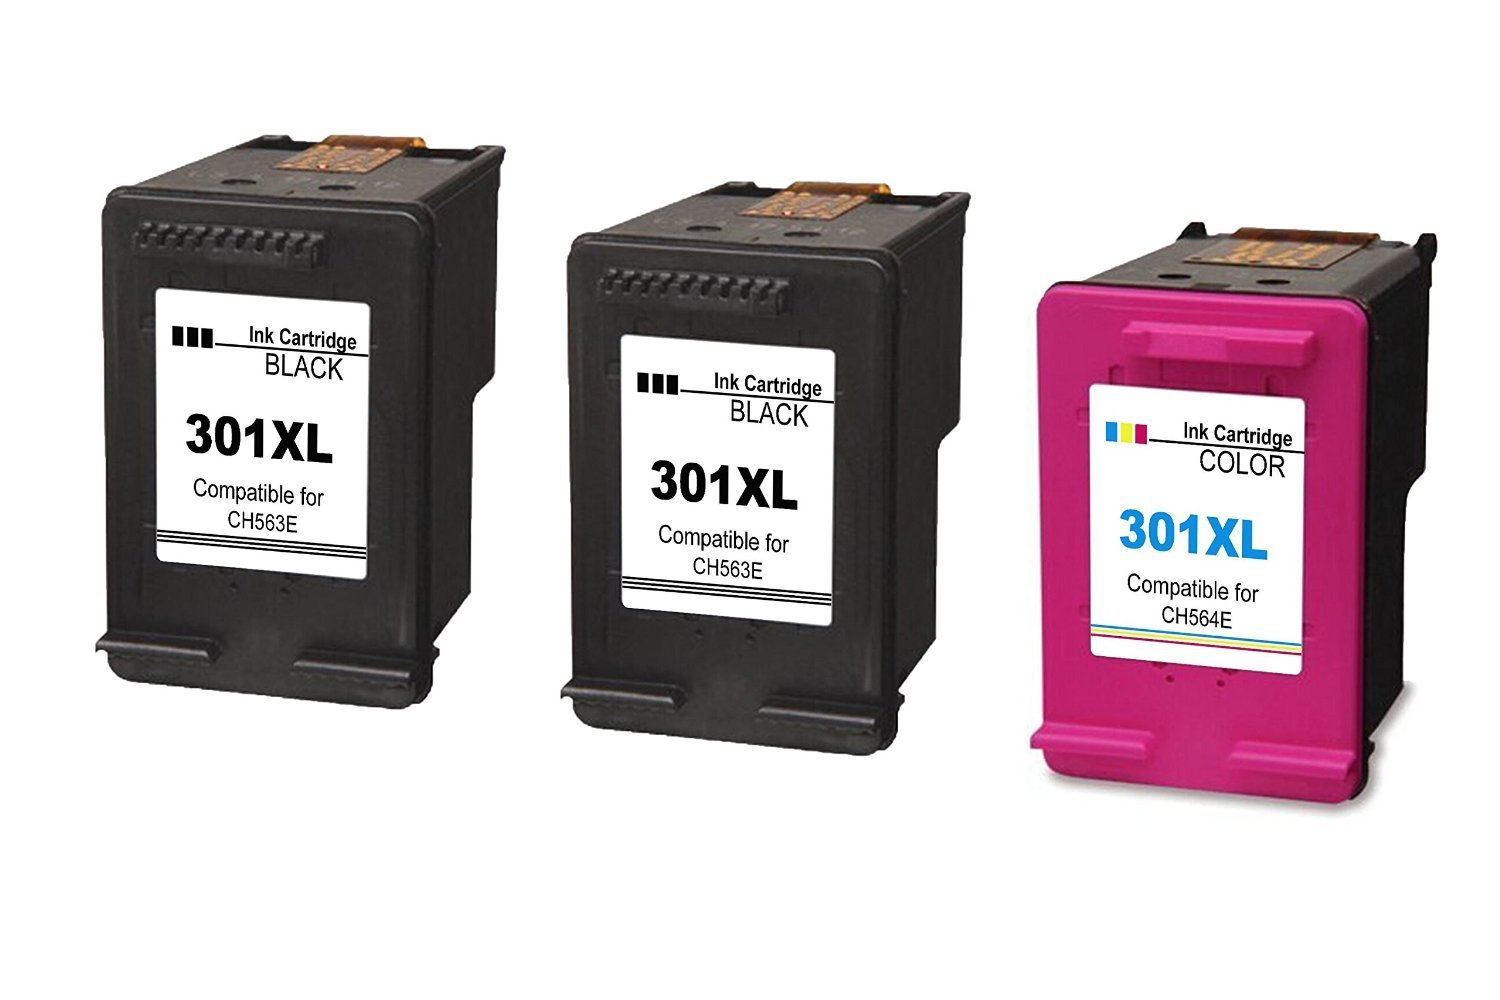 Compatible para HP 301XL Cartuchos Tinta Remanufacturados CH563E/CH564E Cartuchos Inkjet ,2 Color y 1 Negro